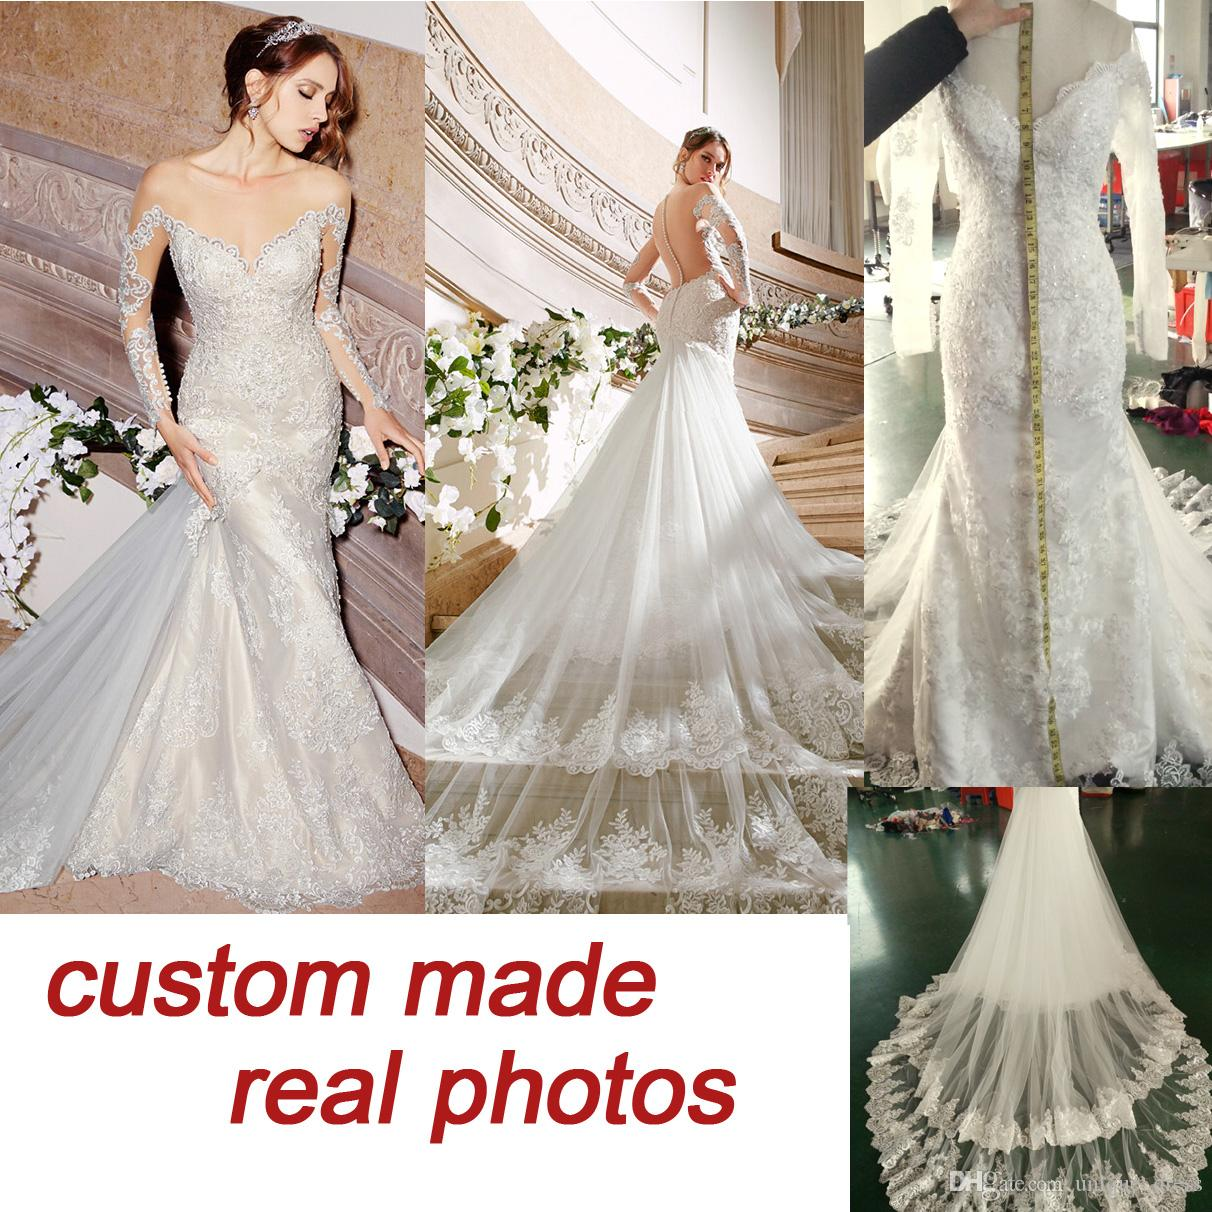 2016 Moonlight Couture Vintage Wedding Dresses Lace Backless Chapel Train Plus Size Long Sleeve Tulle Mermaid 6079